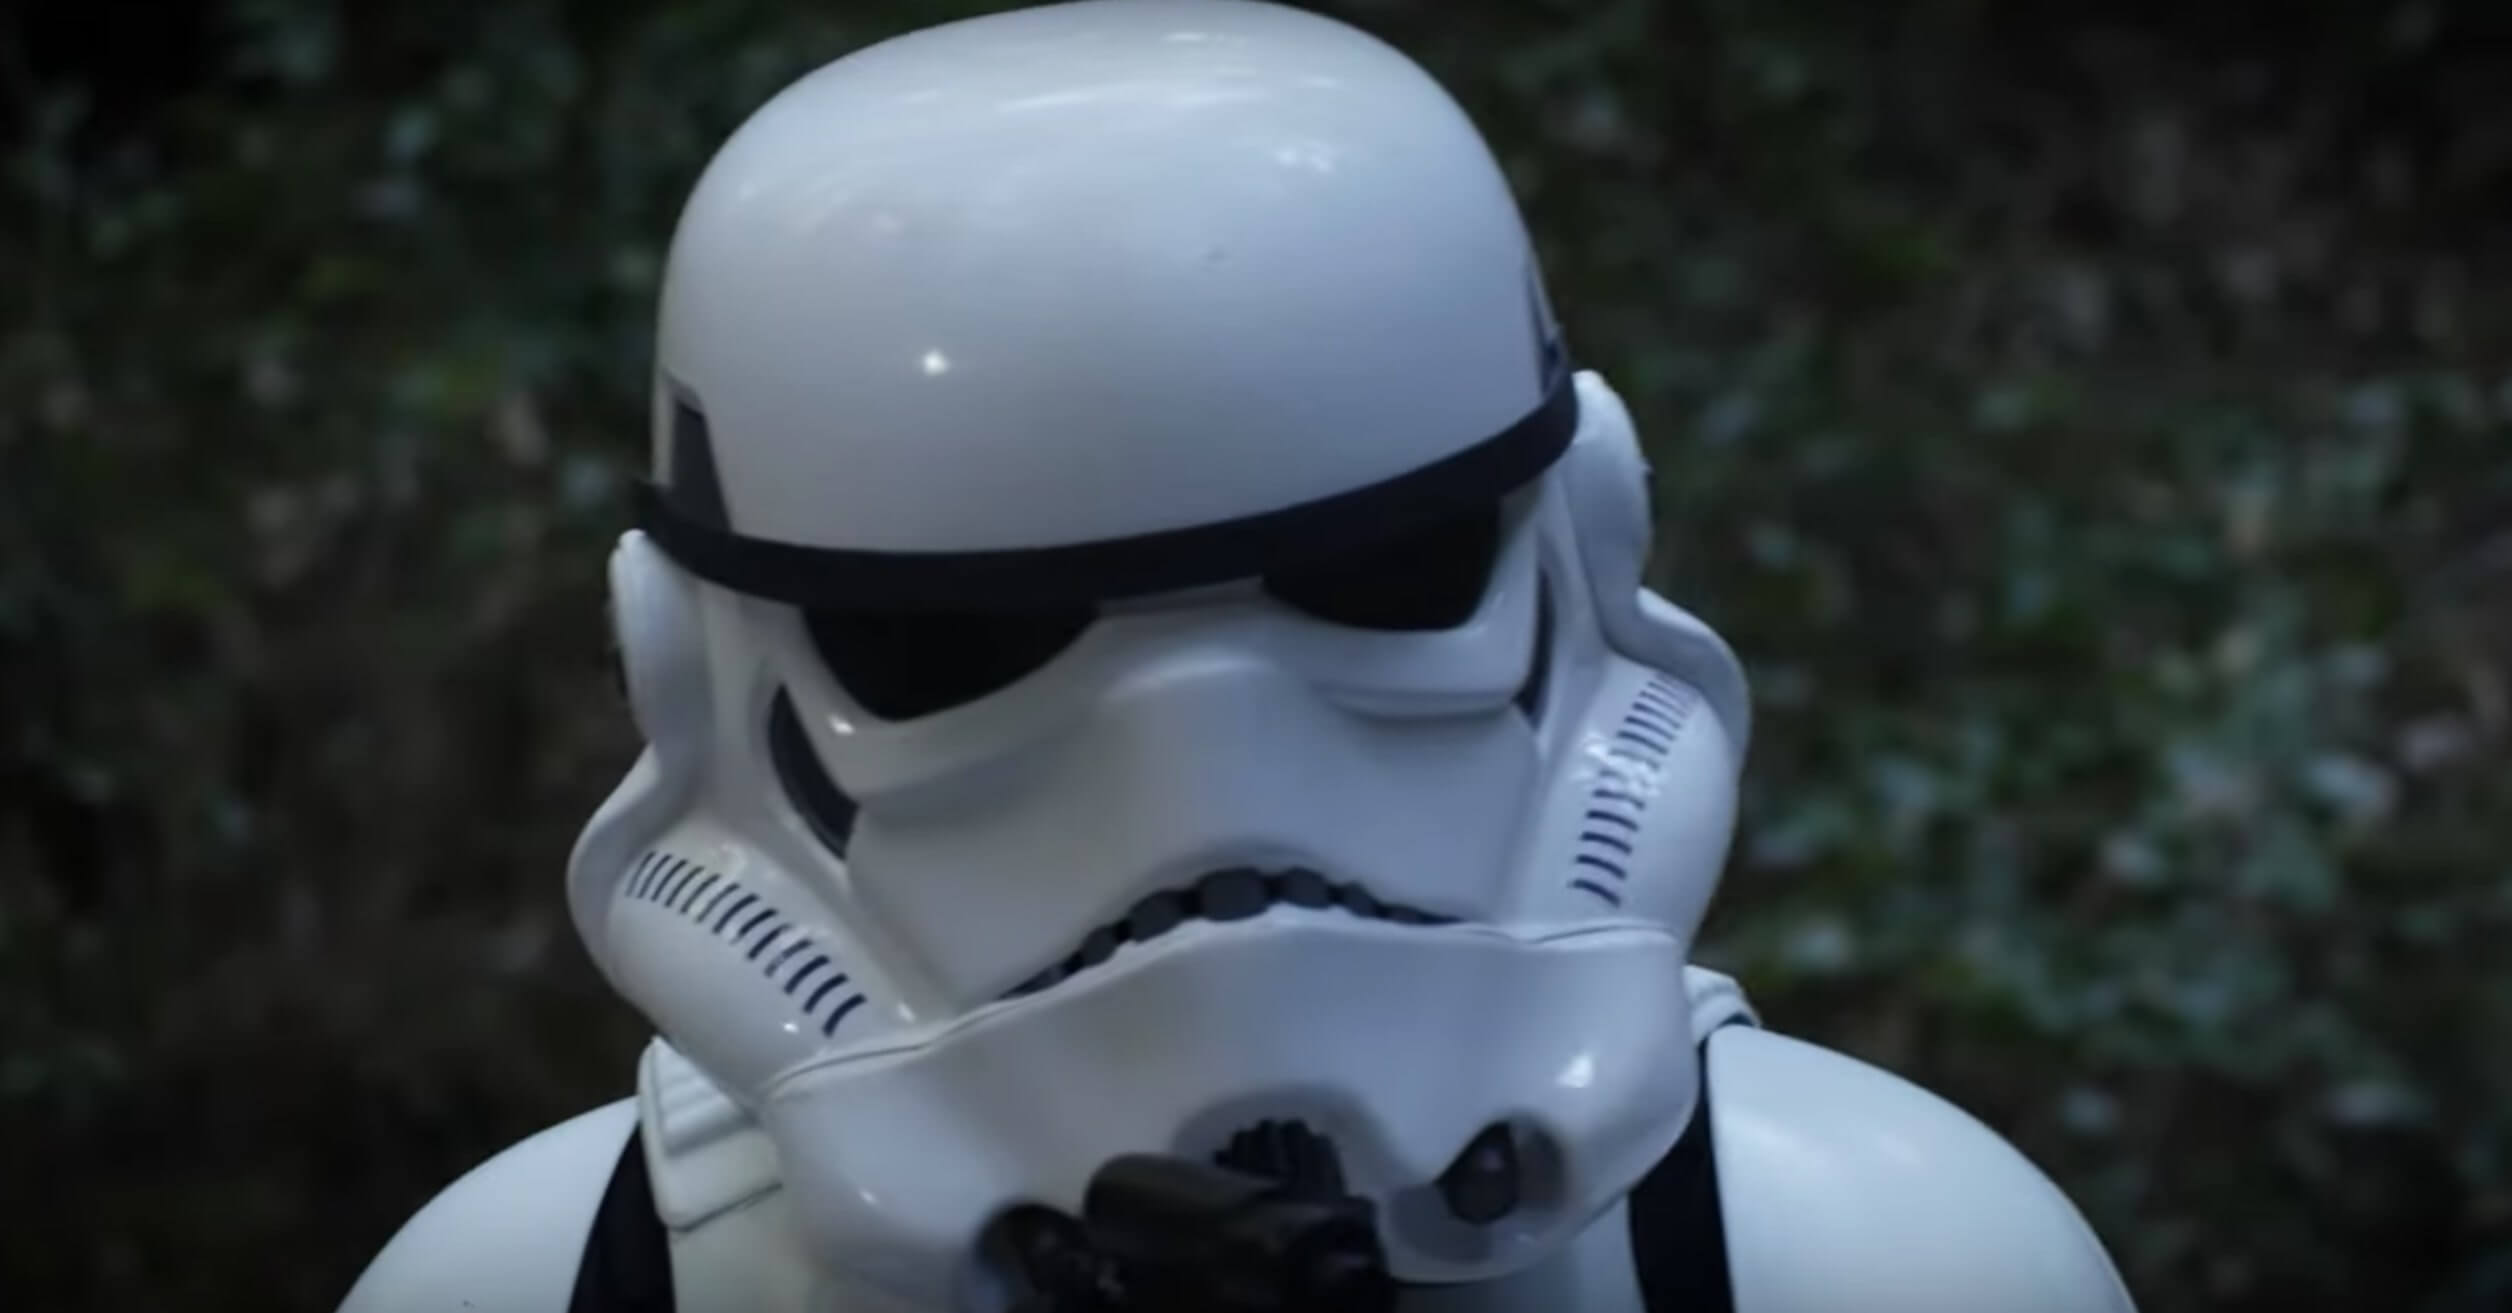 star wars alone fan film stormtrooper 1 - Watch An Ewok Eat A Stormtrooper in Disturbing New Fan Film STAR WARS: ALONE